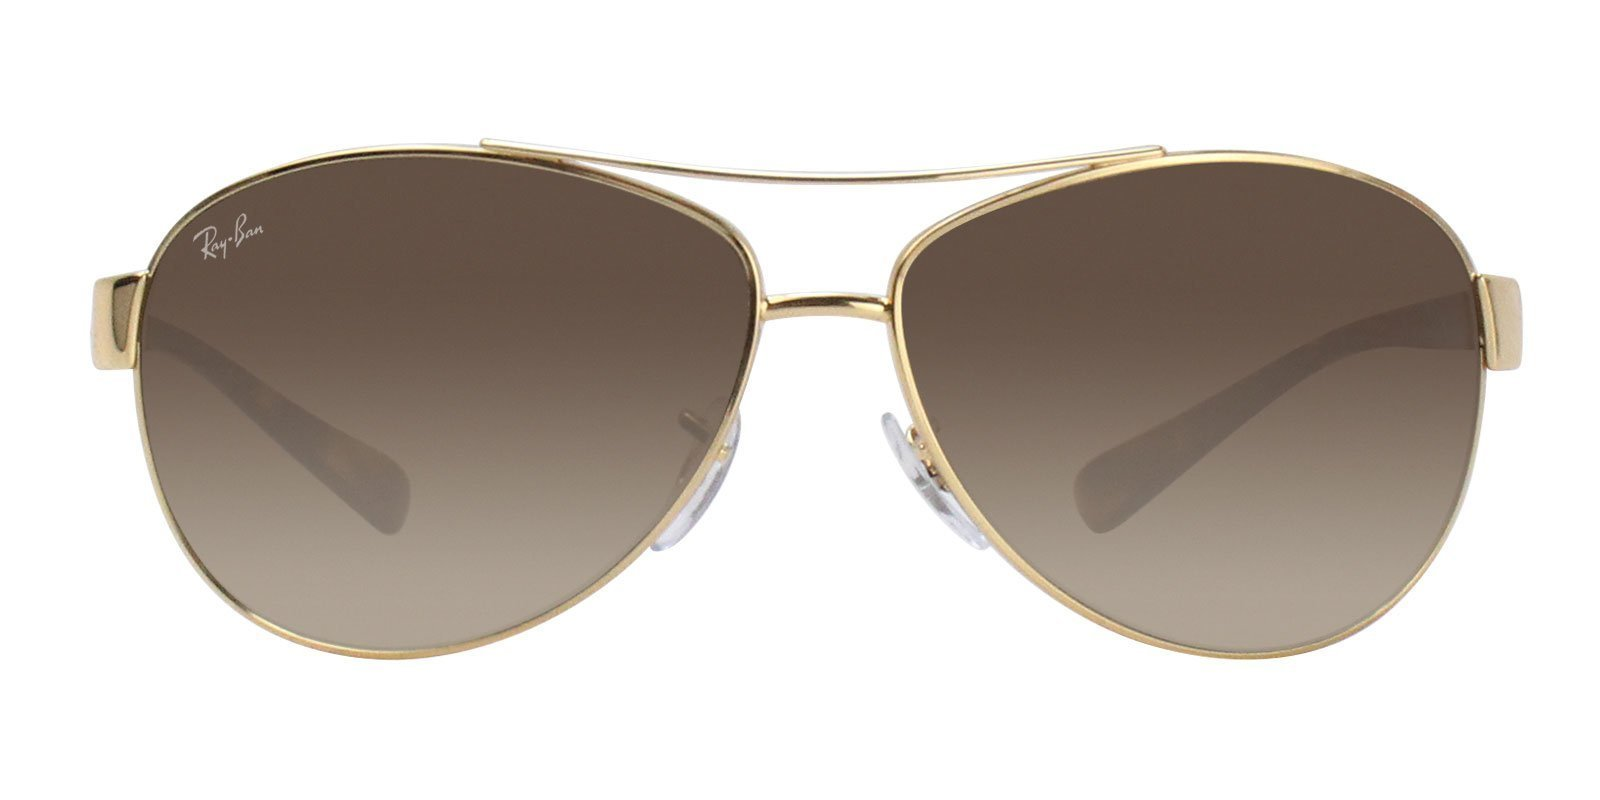 Ray Ban - RB3386 Gold Aviator Men Sunglasses - 63mm-Sunglasses-Designer Eyes